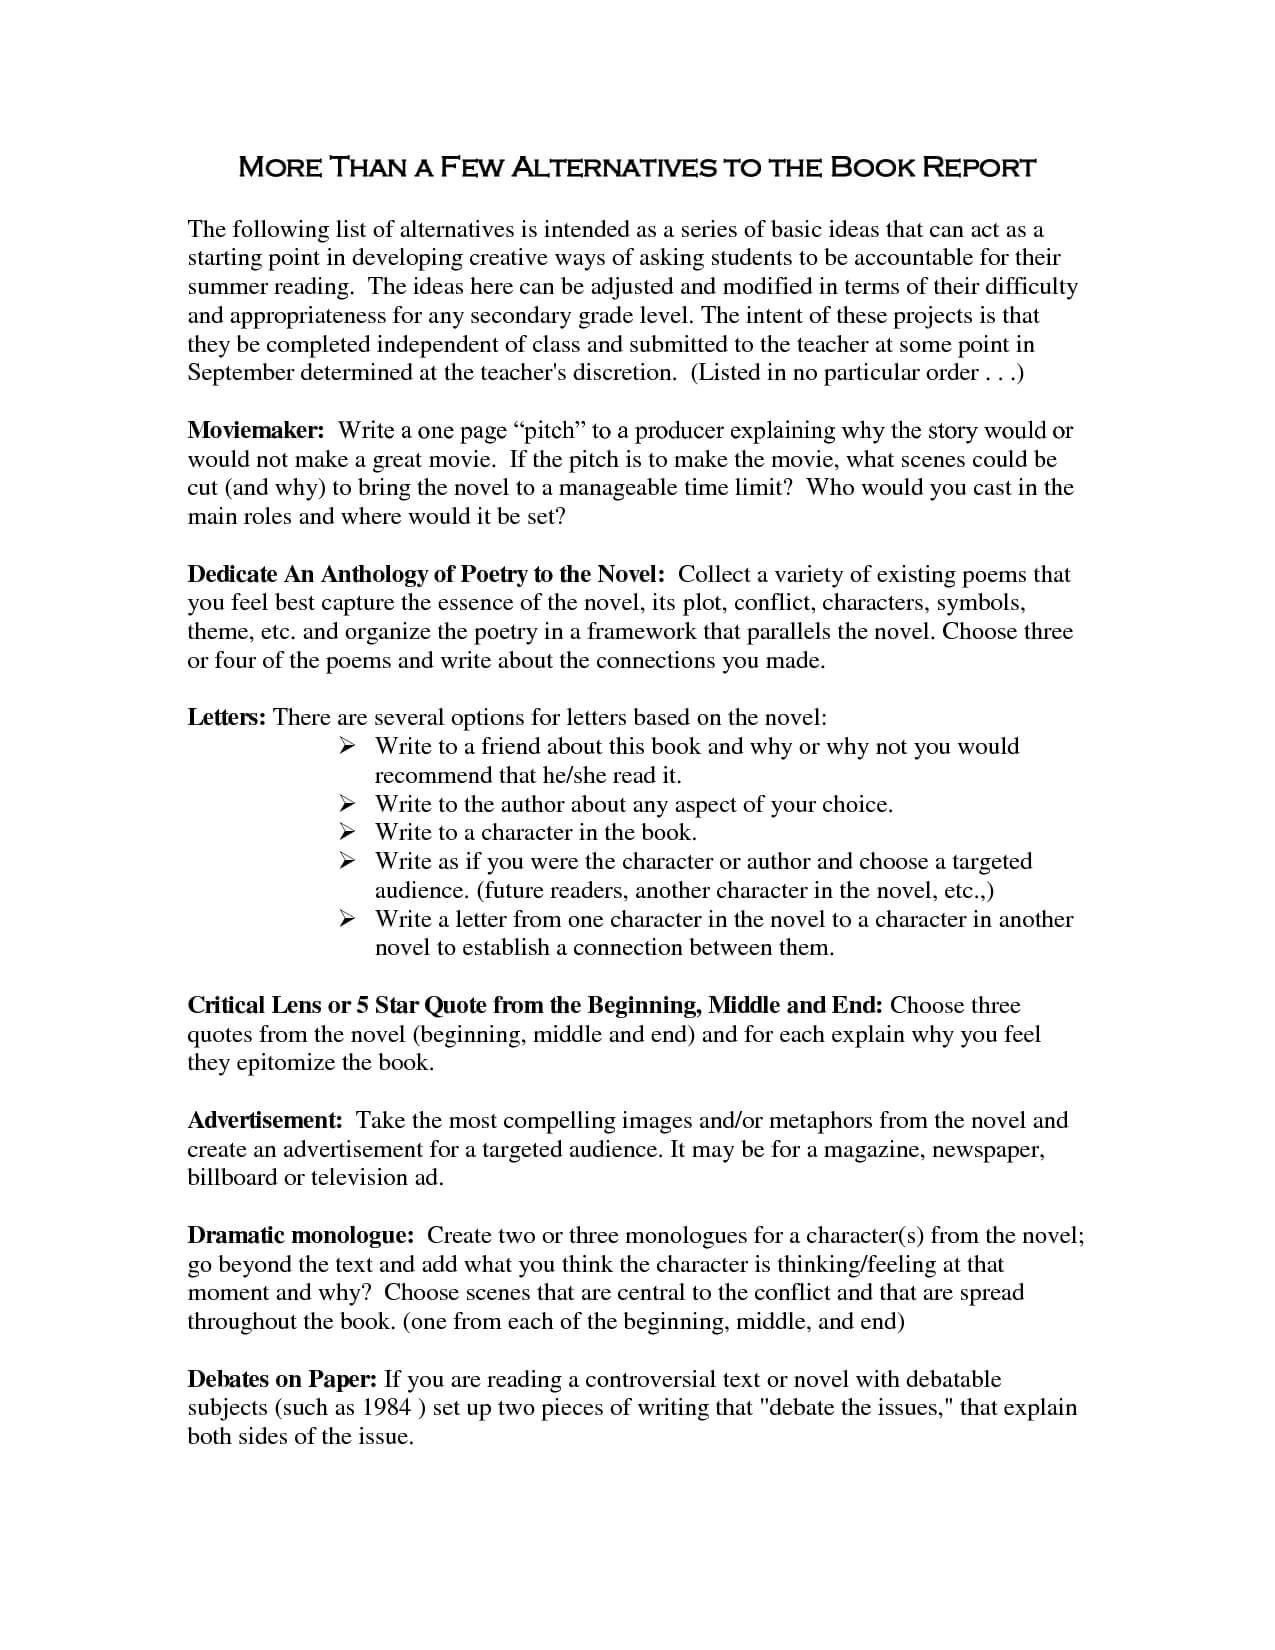 Book Template Category Page 1 - Izzness pertaining to College Book Report Template